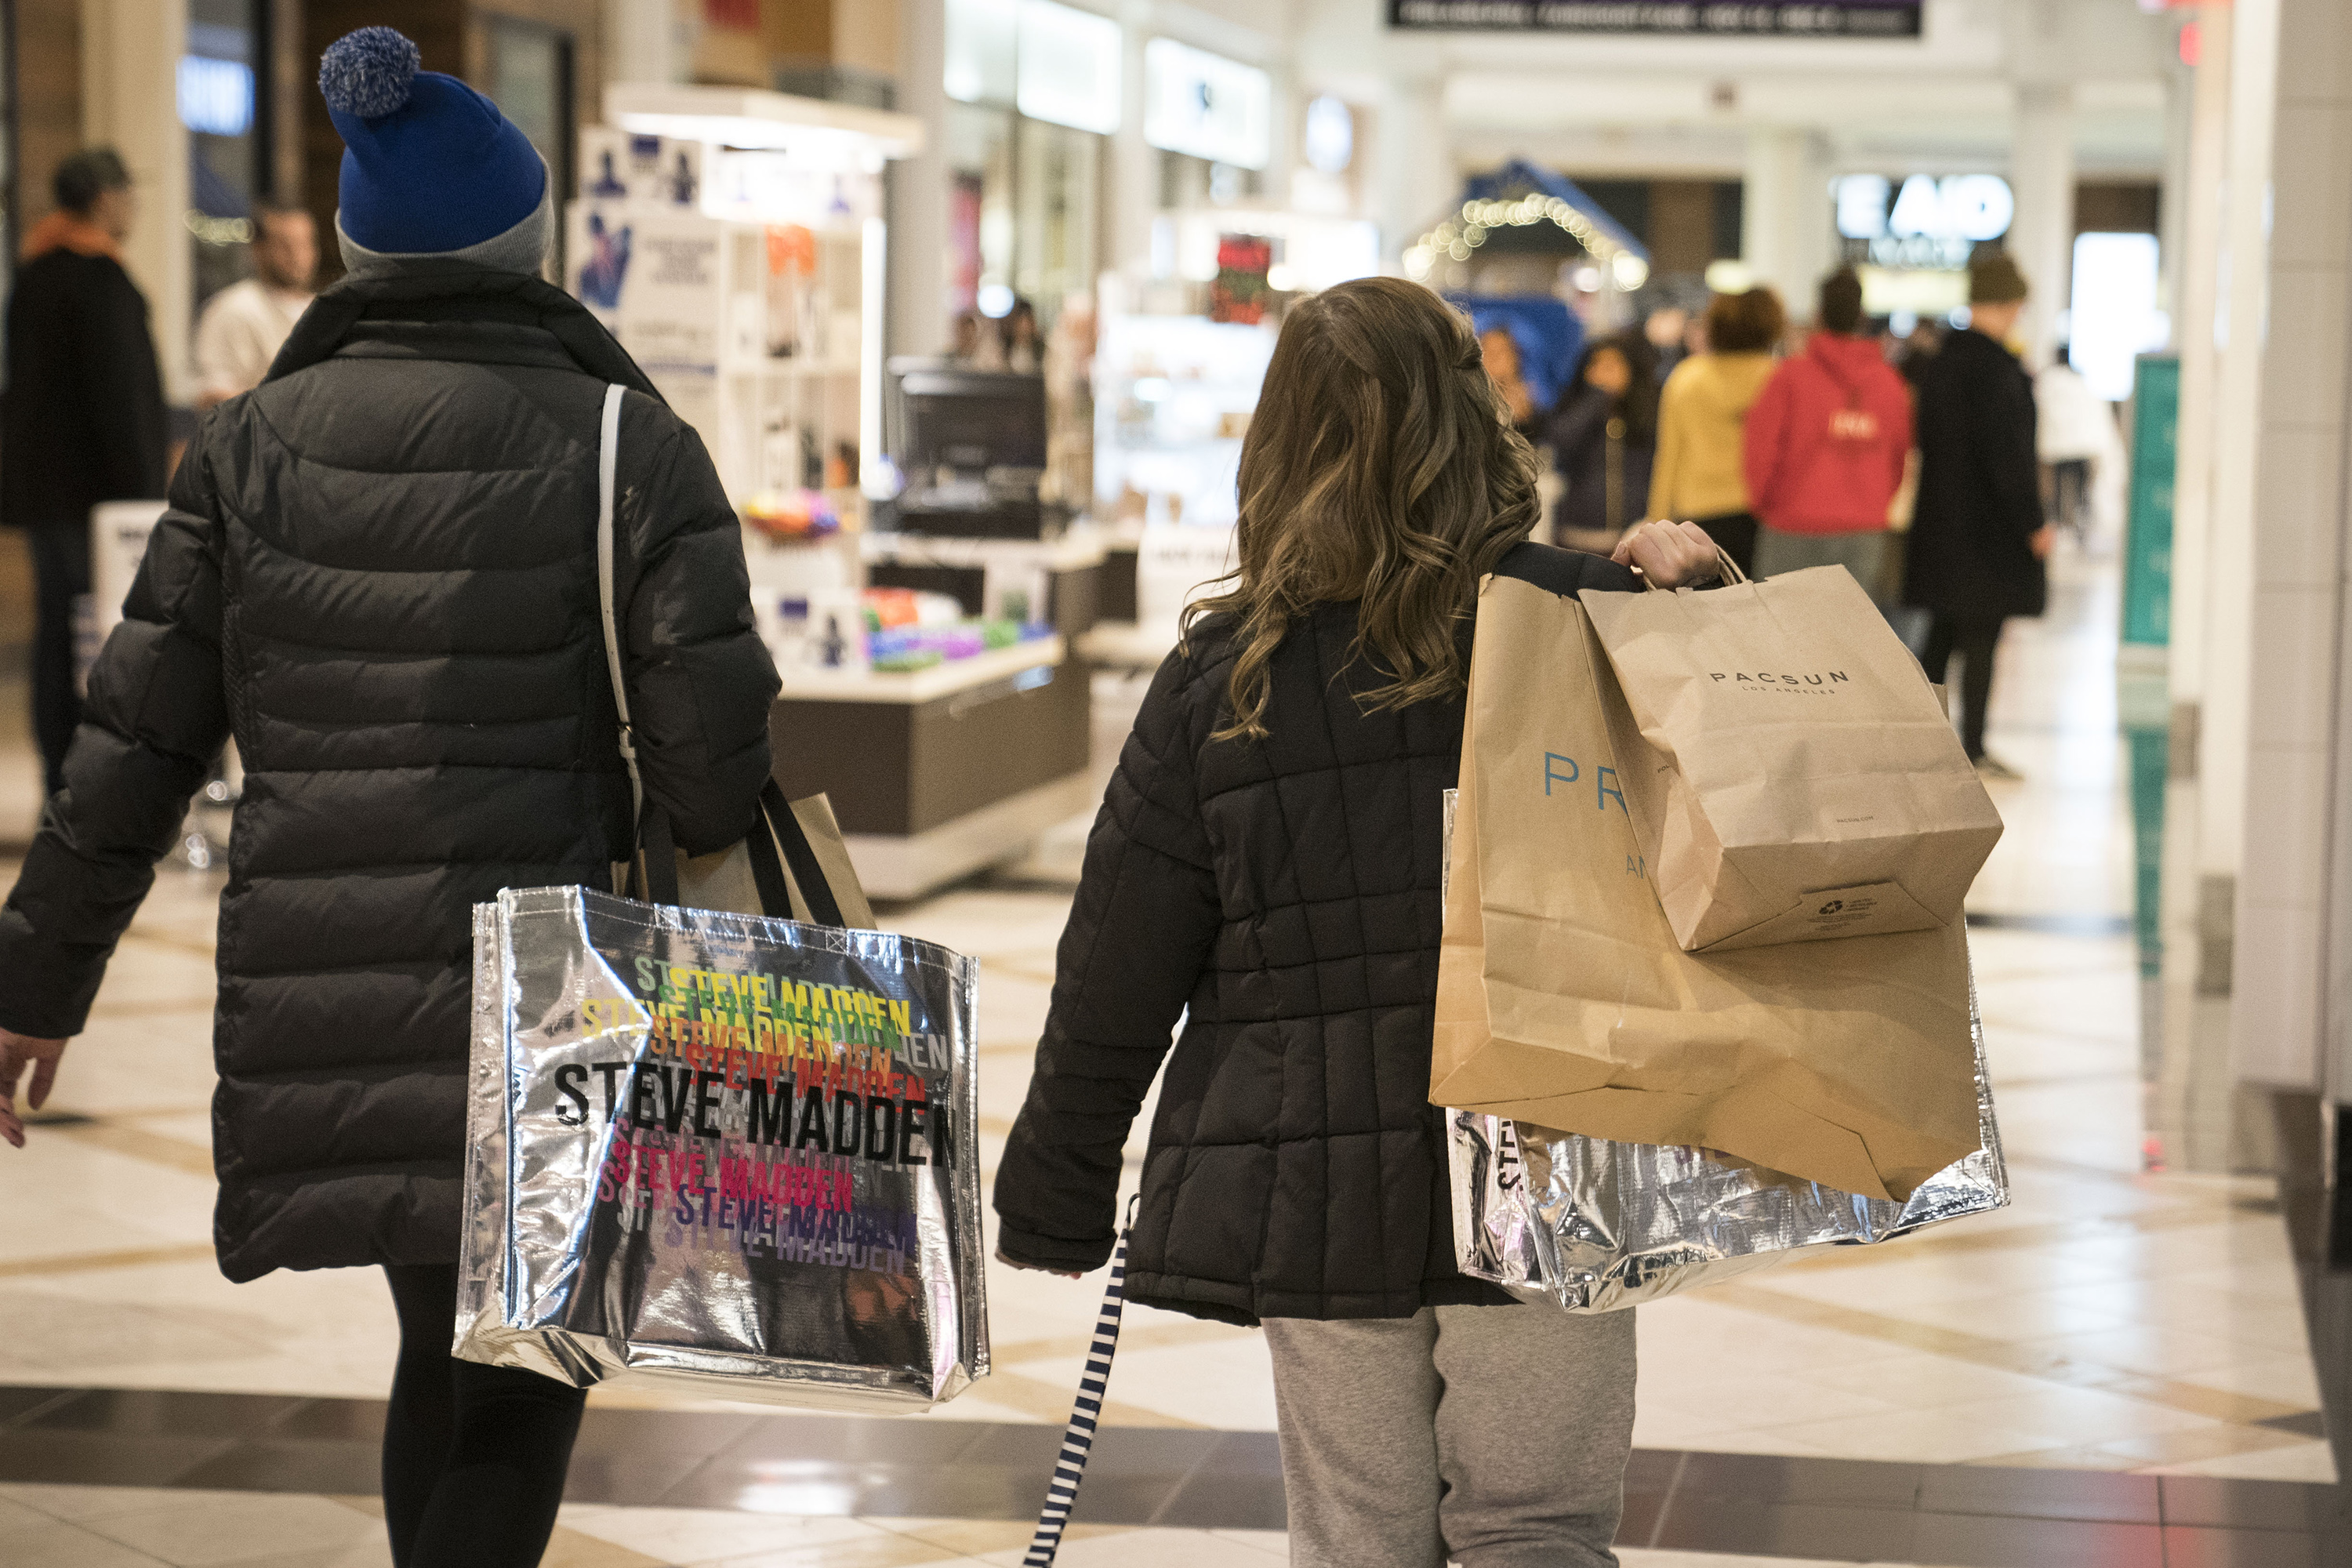 Black Friday: US shoppers spend over $2B online